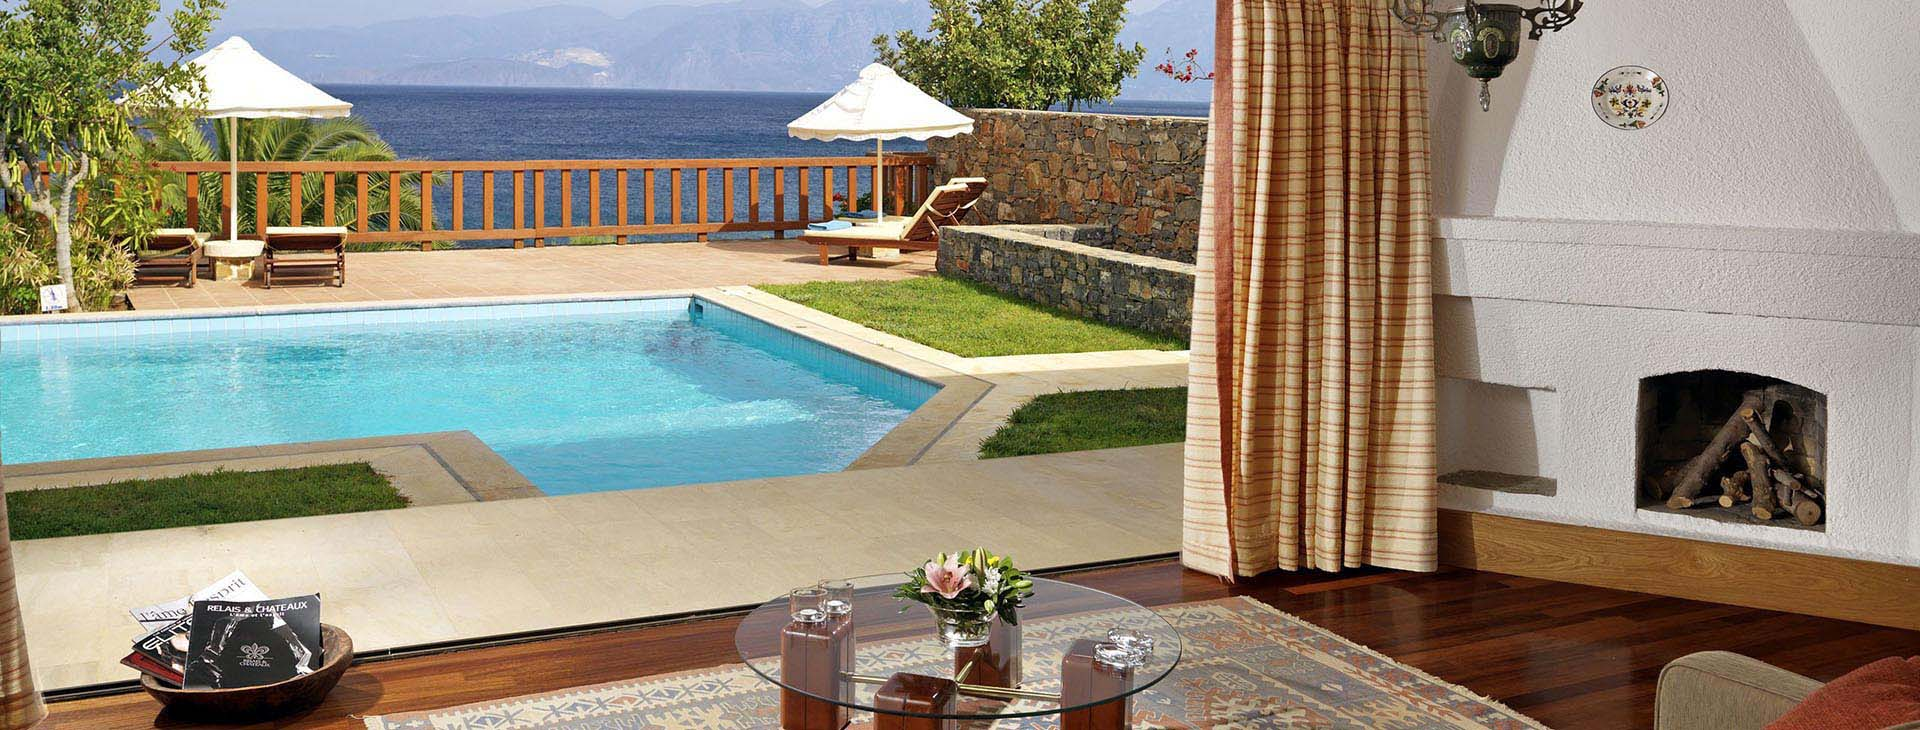 Elounda Mare Hotel - Relais Châteaux - Royal Suites with terrace